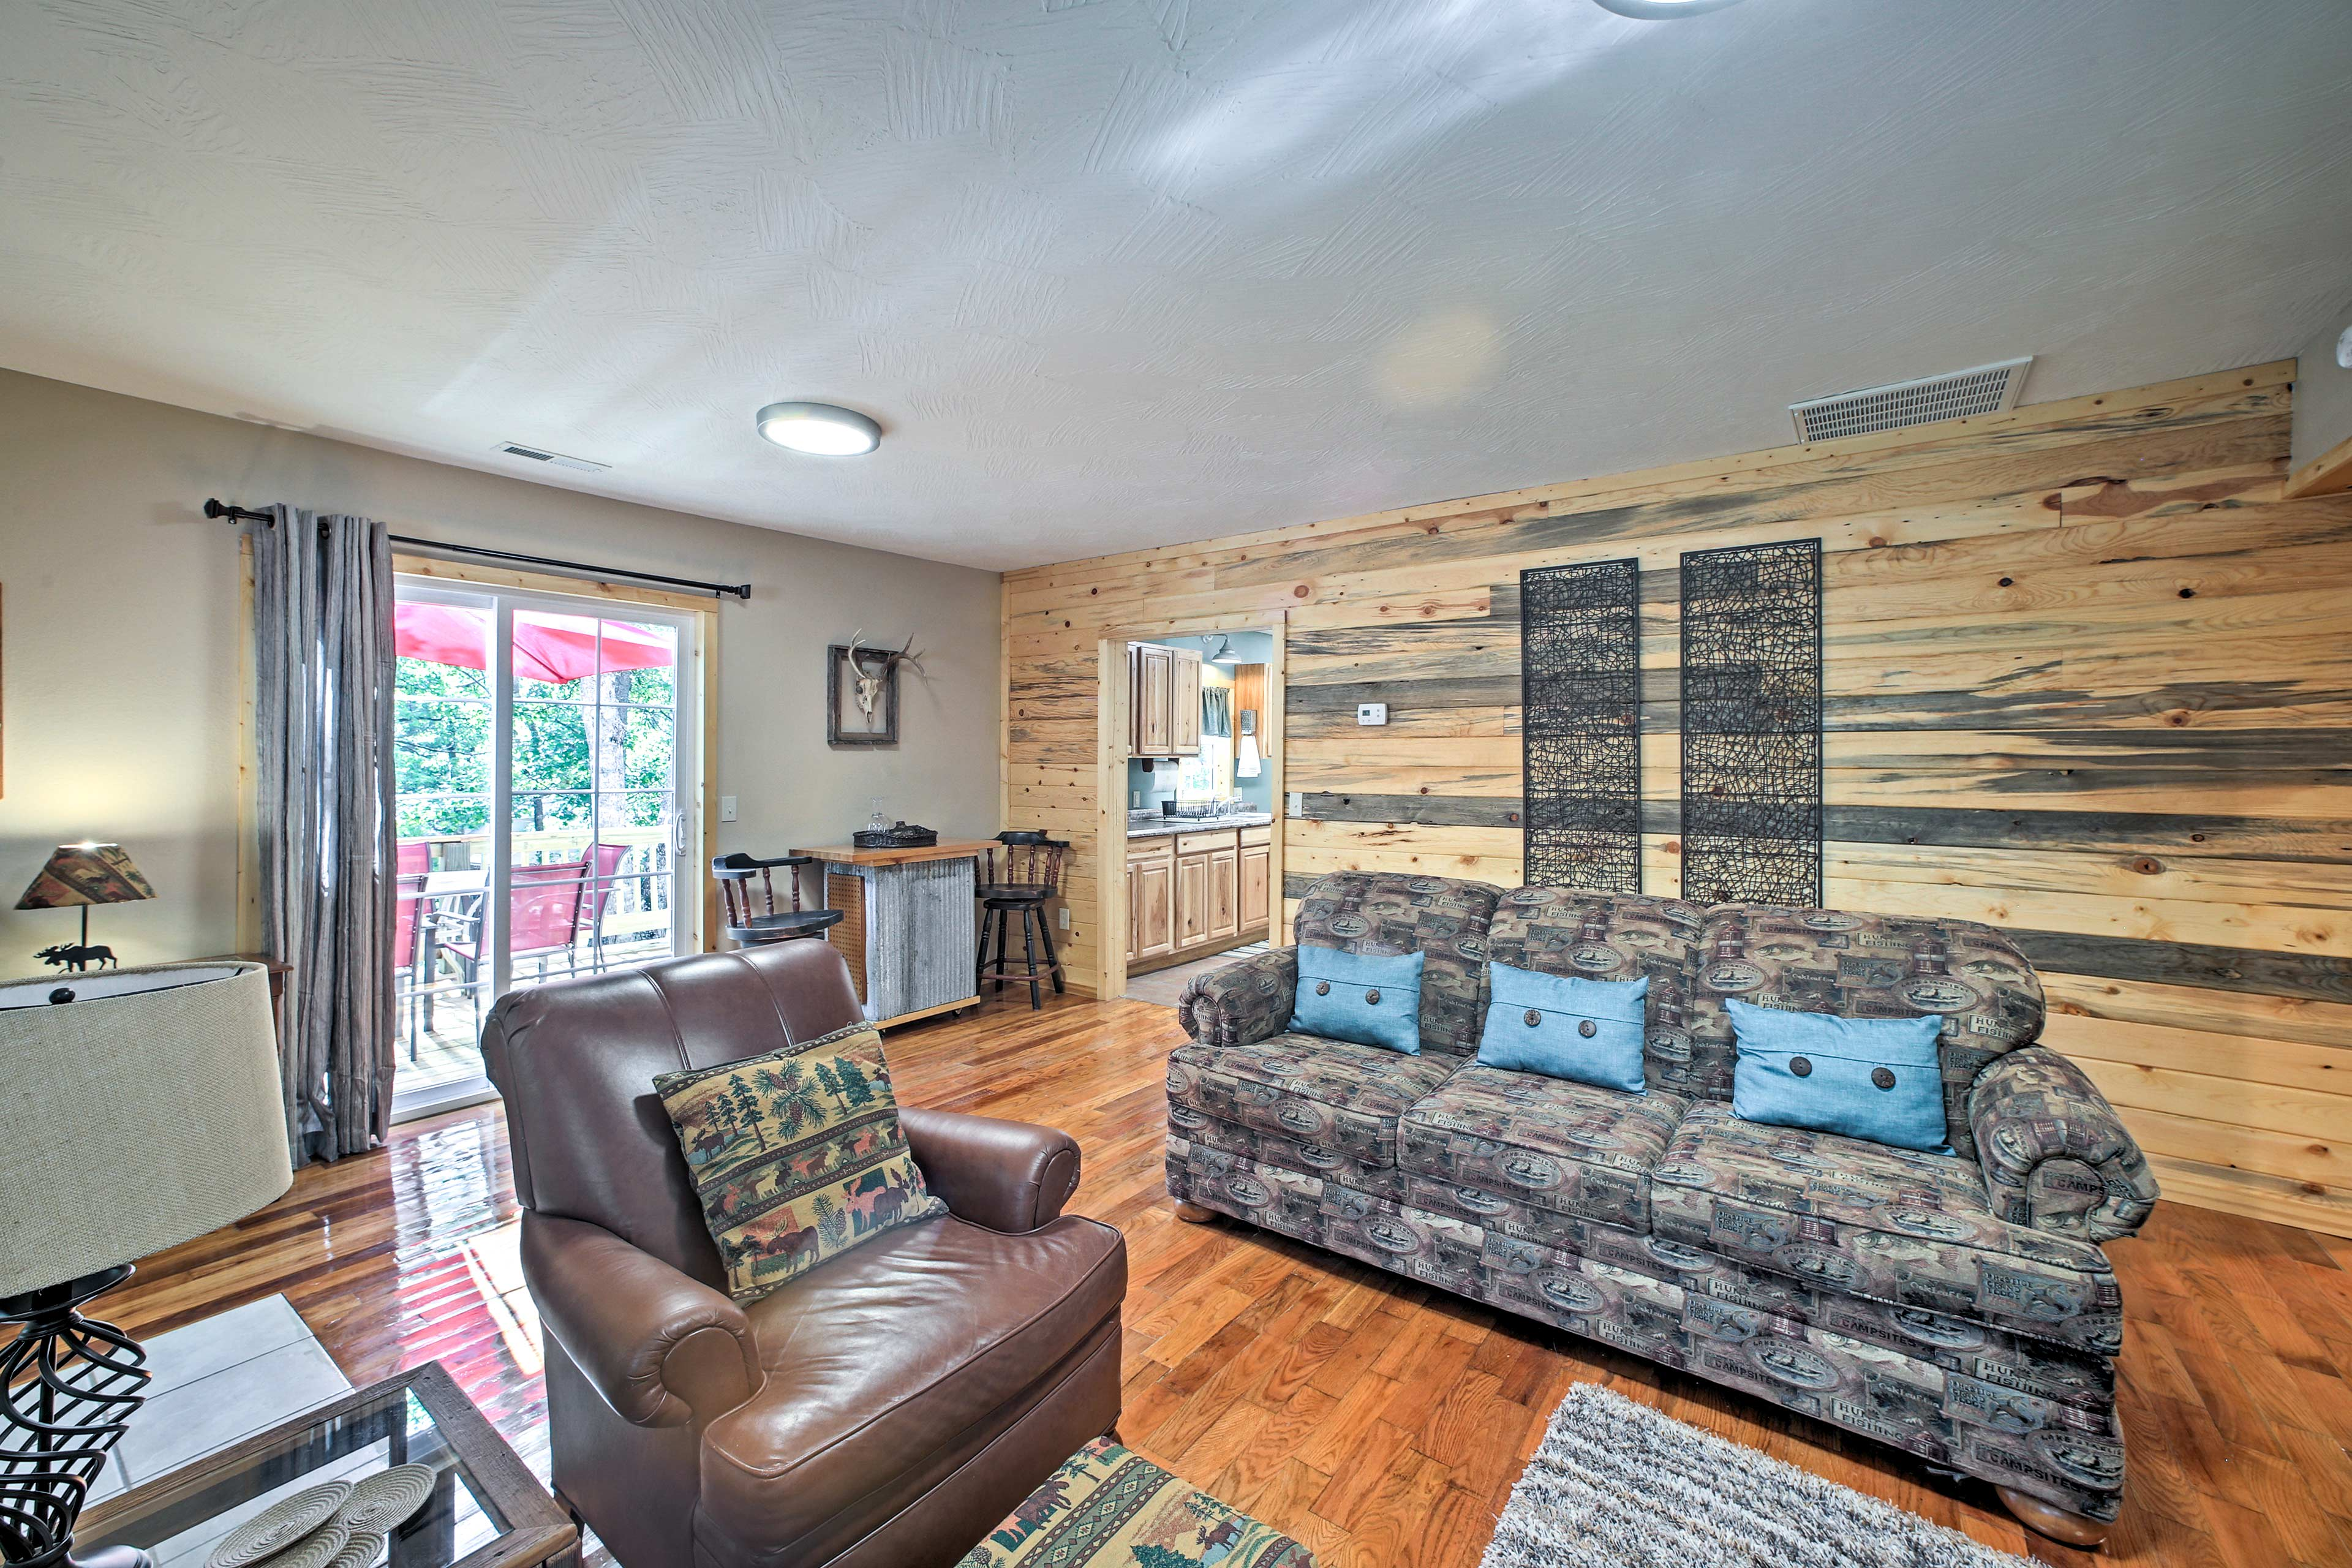 The wood paneled wall is a lovely accent to the already cozy room.